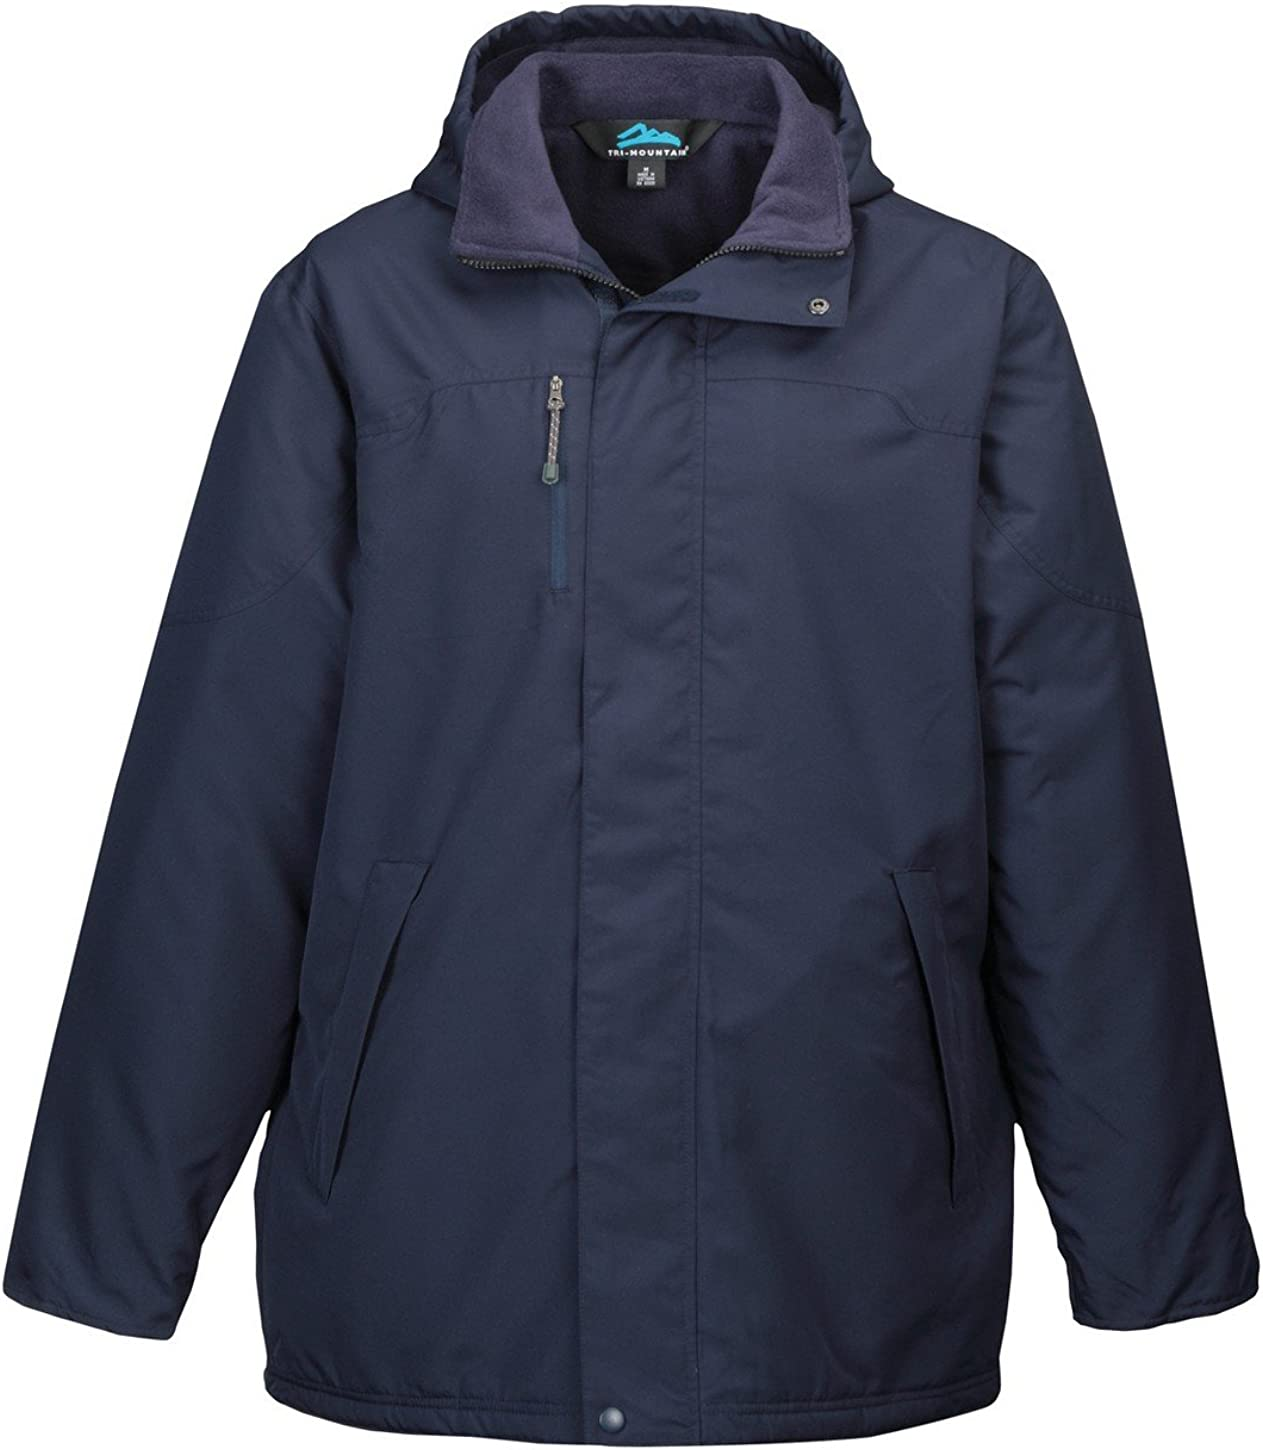 Tri-Mountain 9980 Mens 100% Polyester Long Sleeve jacket With Water Resistent - Navy/Navy - S